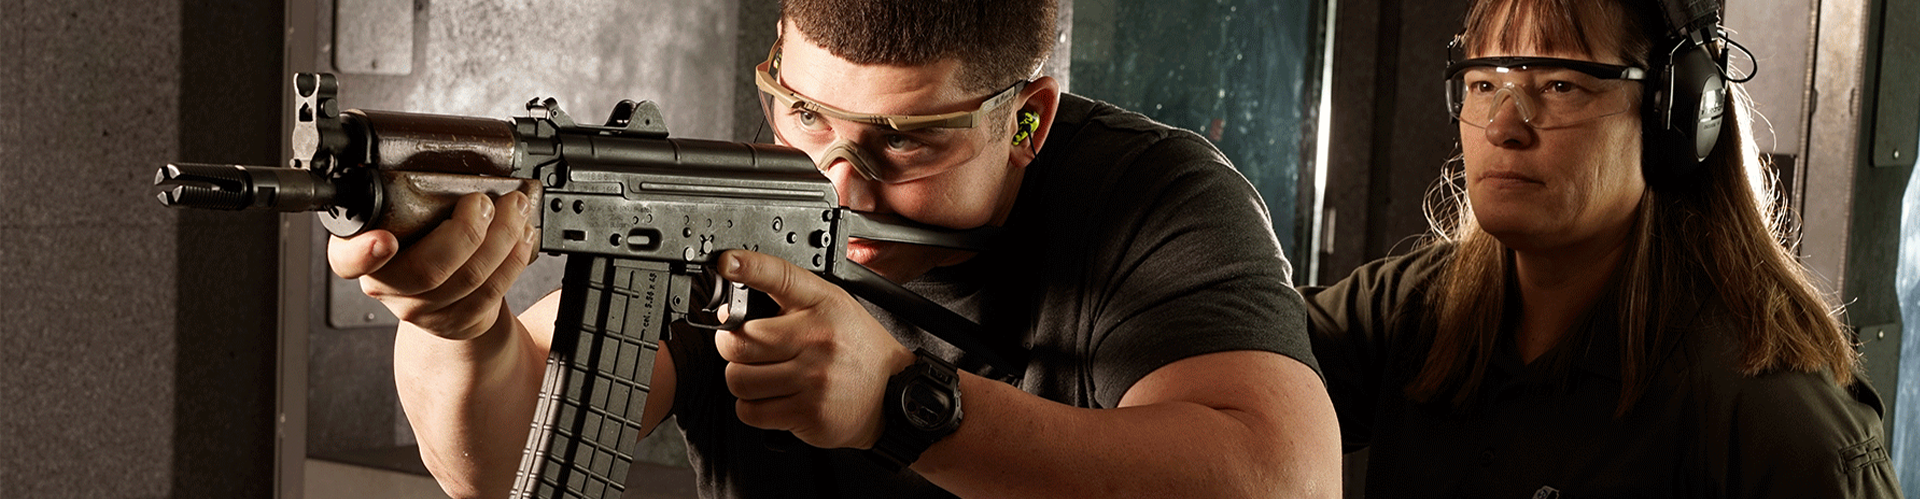 Armory Ranges - Shooting Class